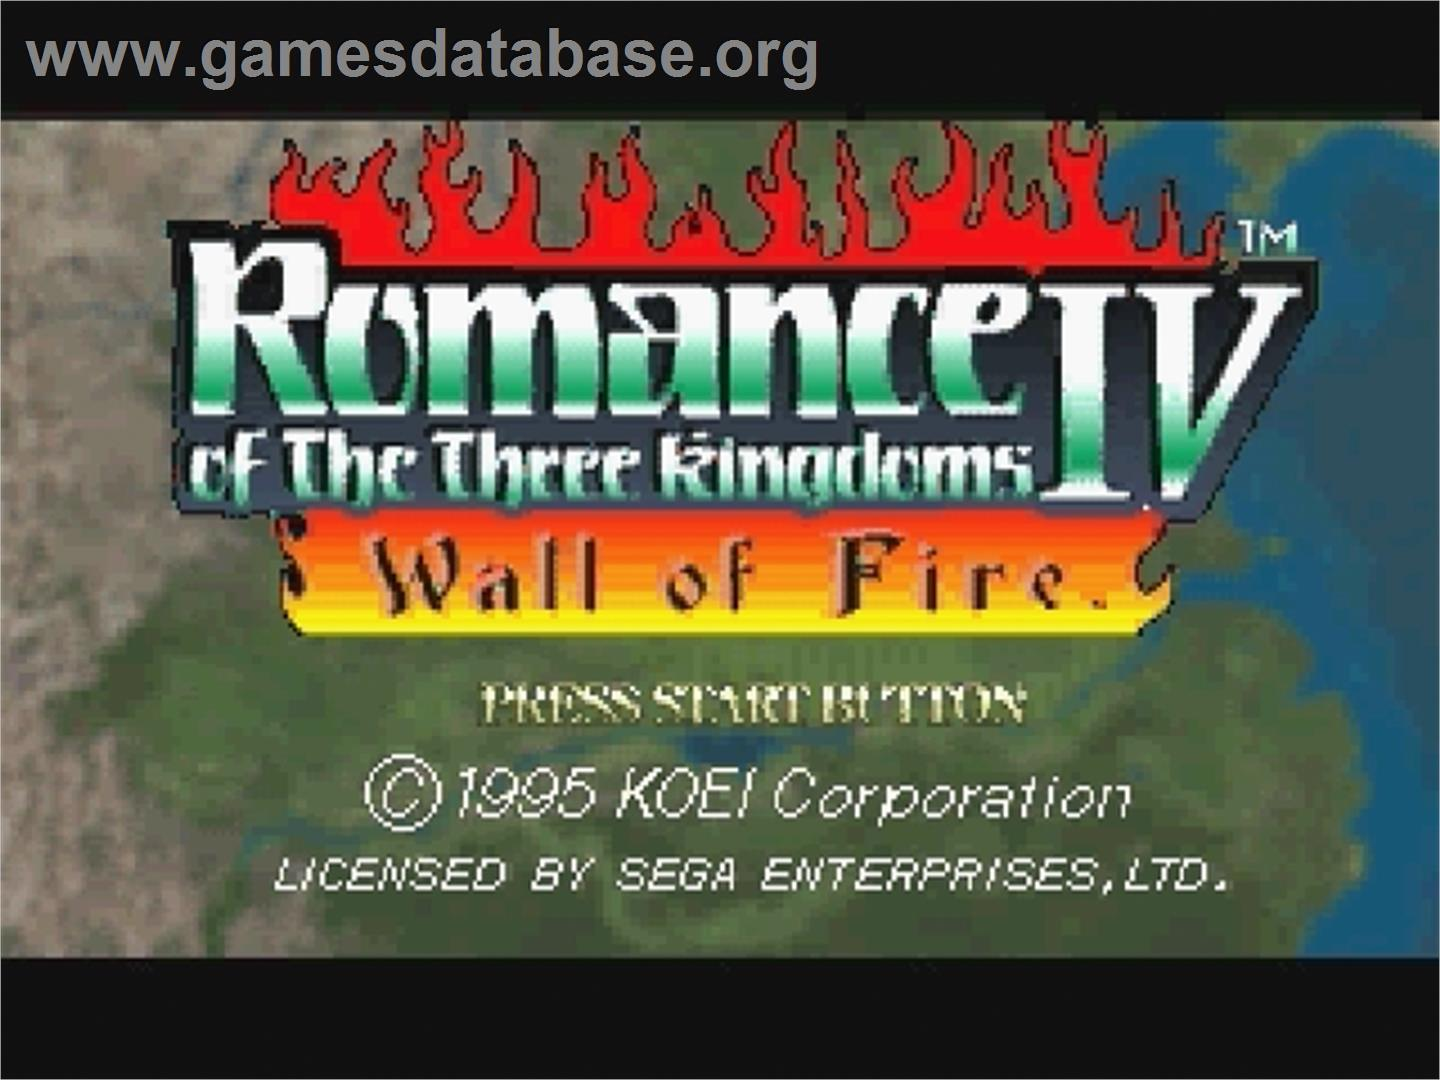 Title screen of Romance of the Three Kingdoms IV: Wall of Fire on the